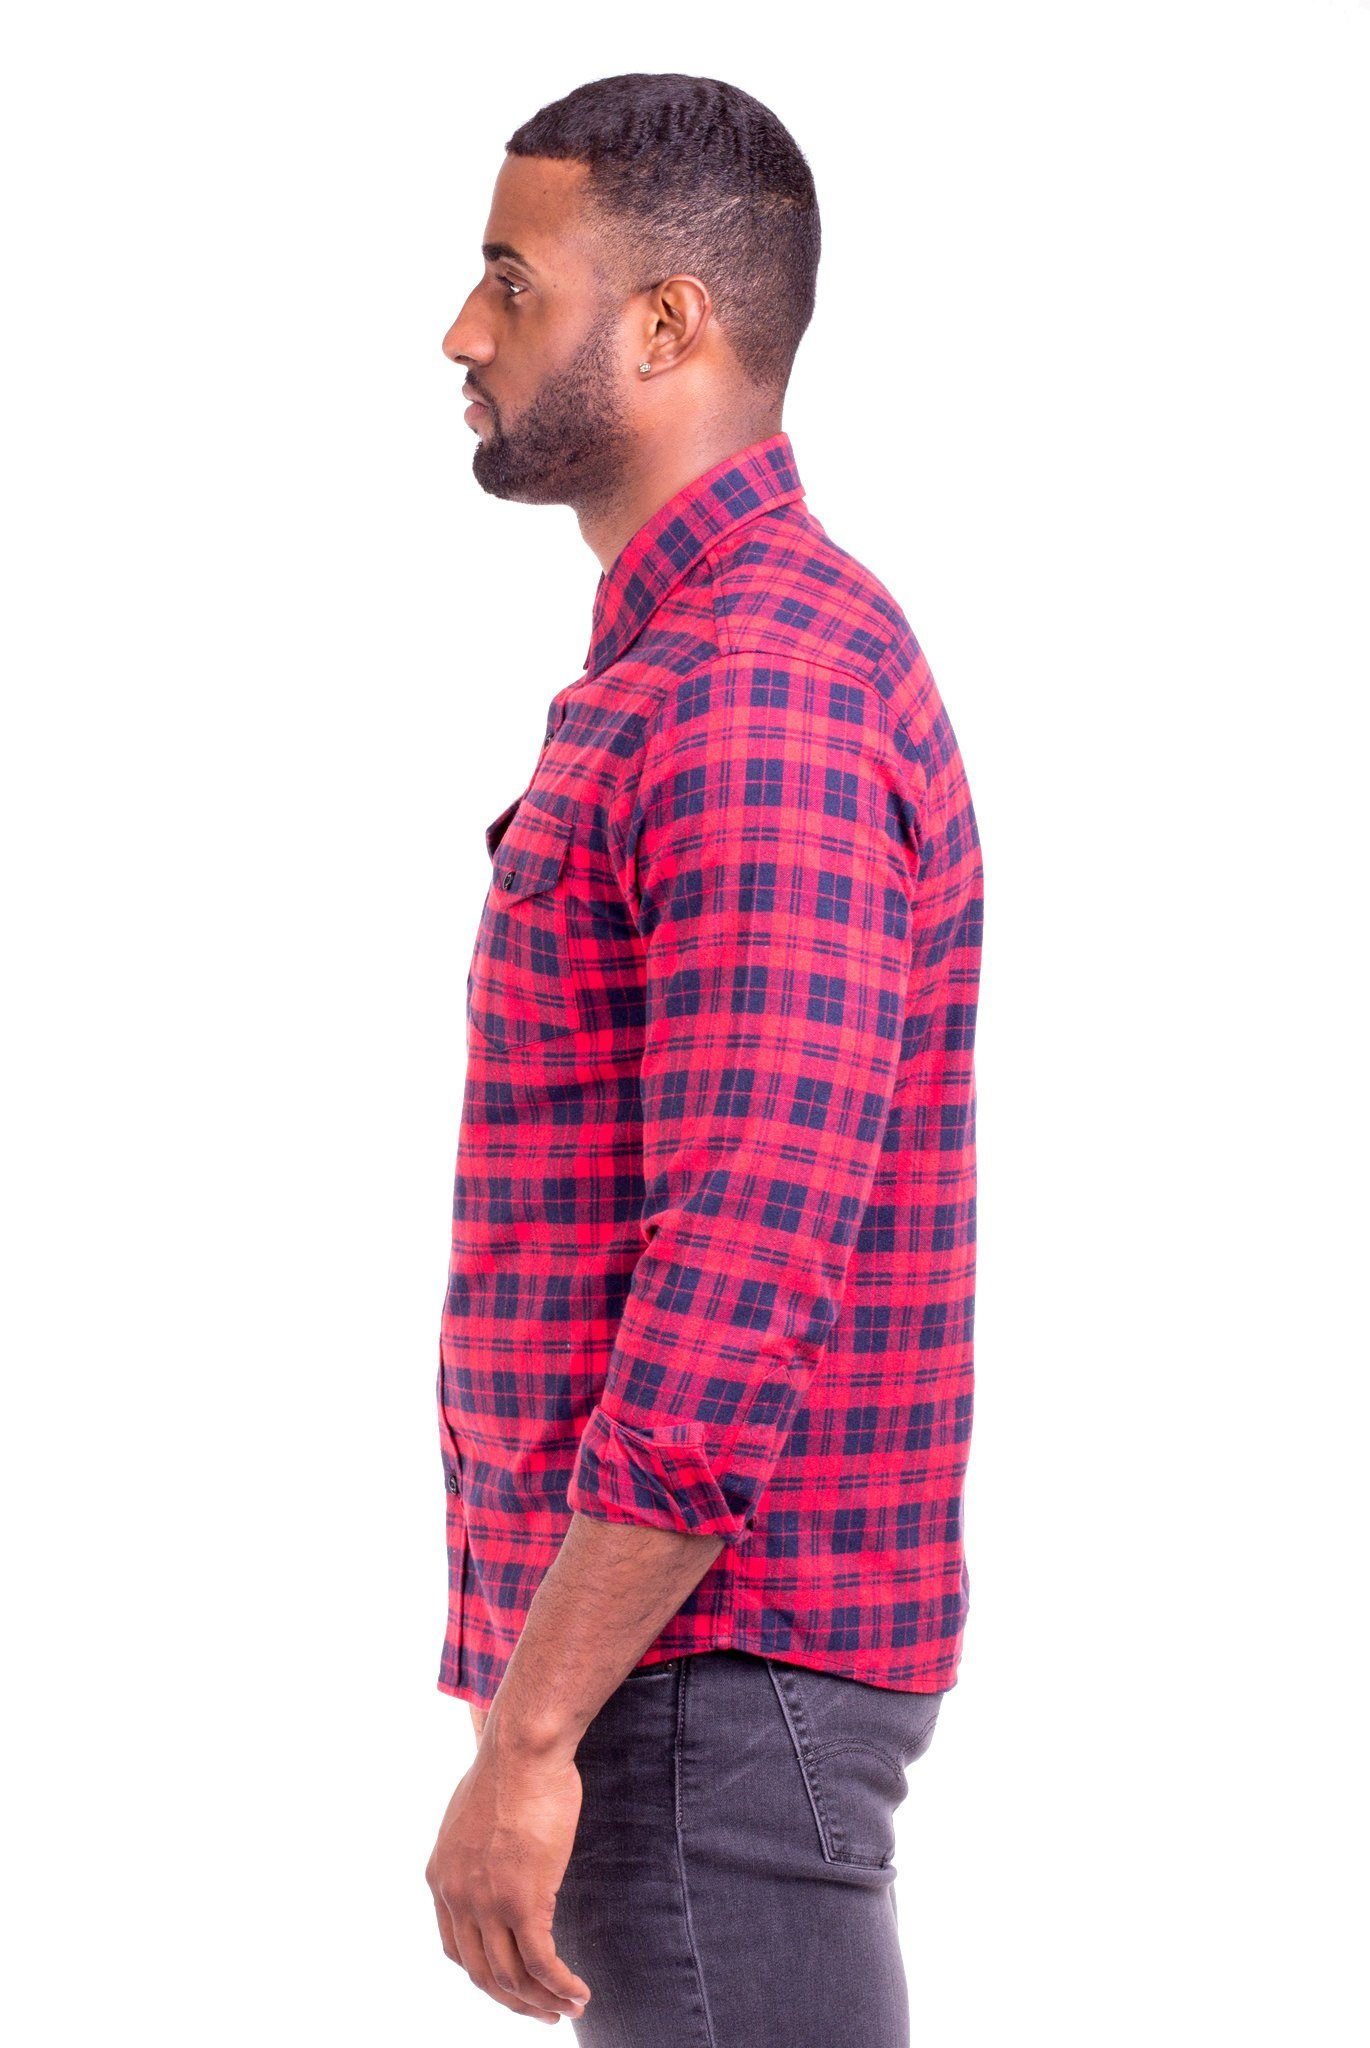 """JOHNNY"" RED/BLUE PLAID FLANNEL SHIRT"